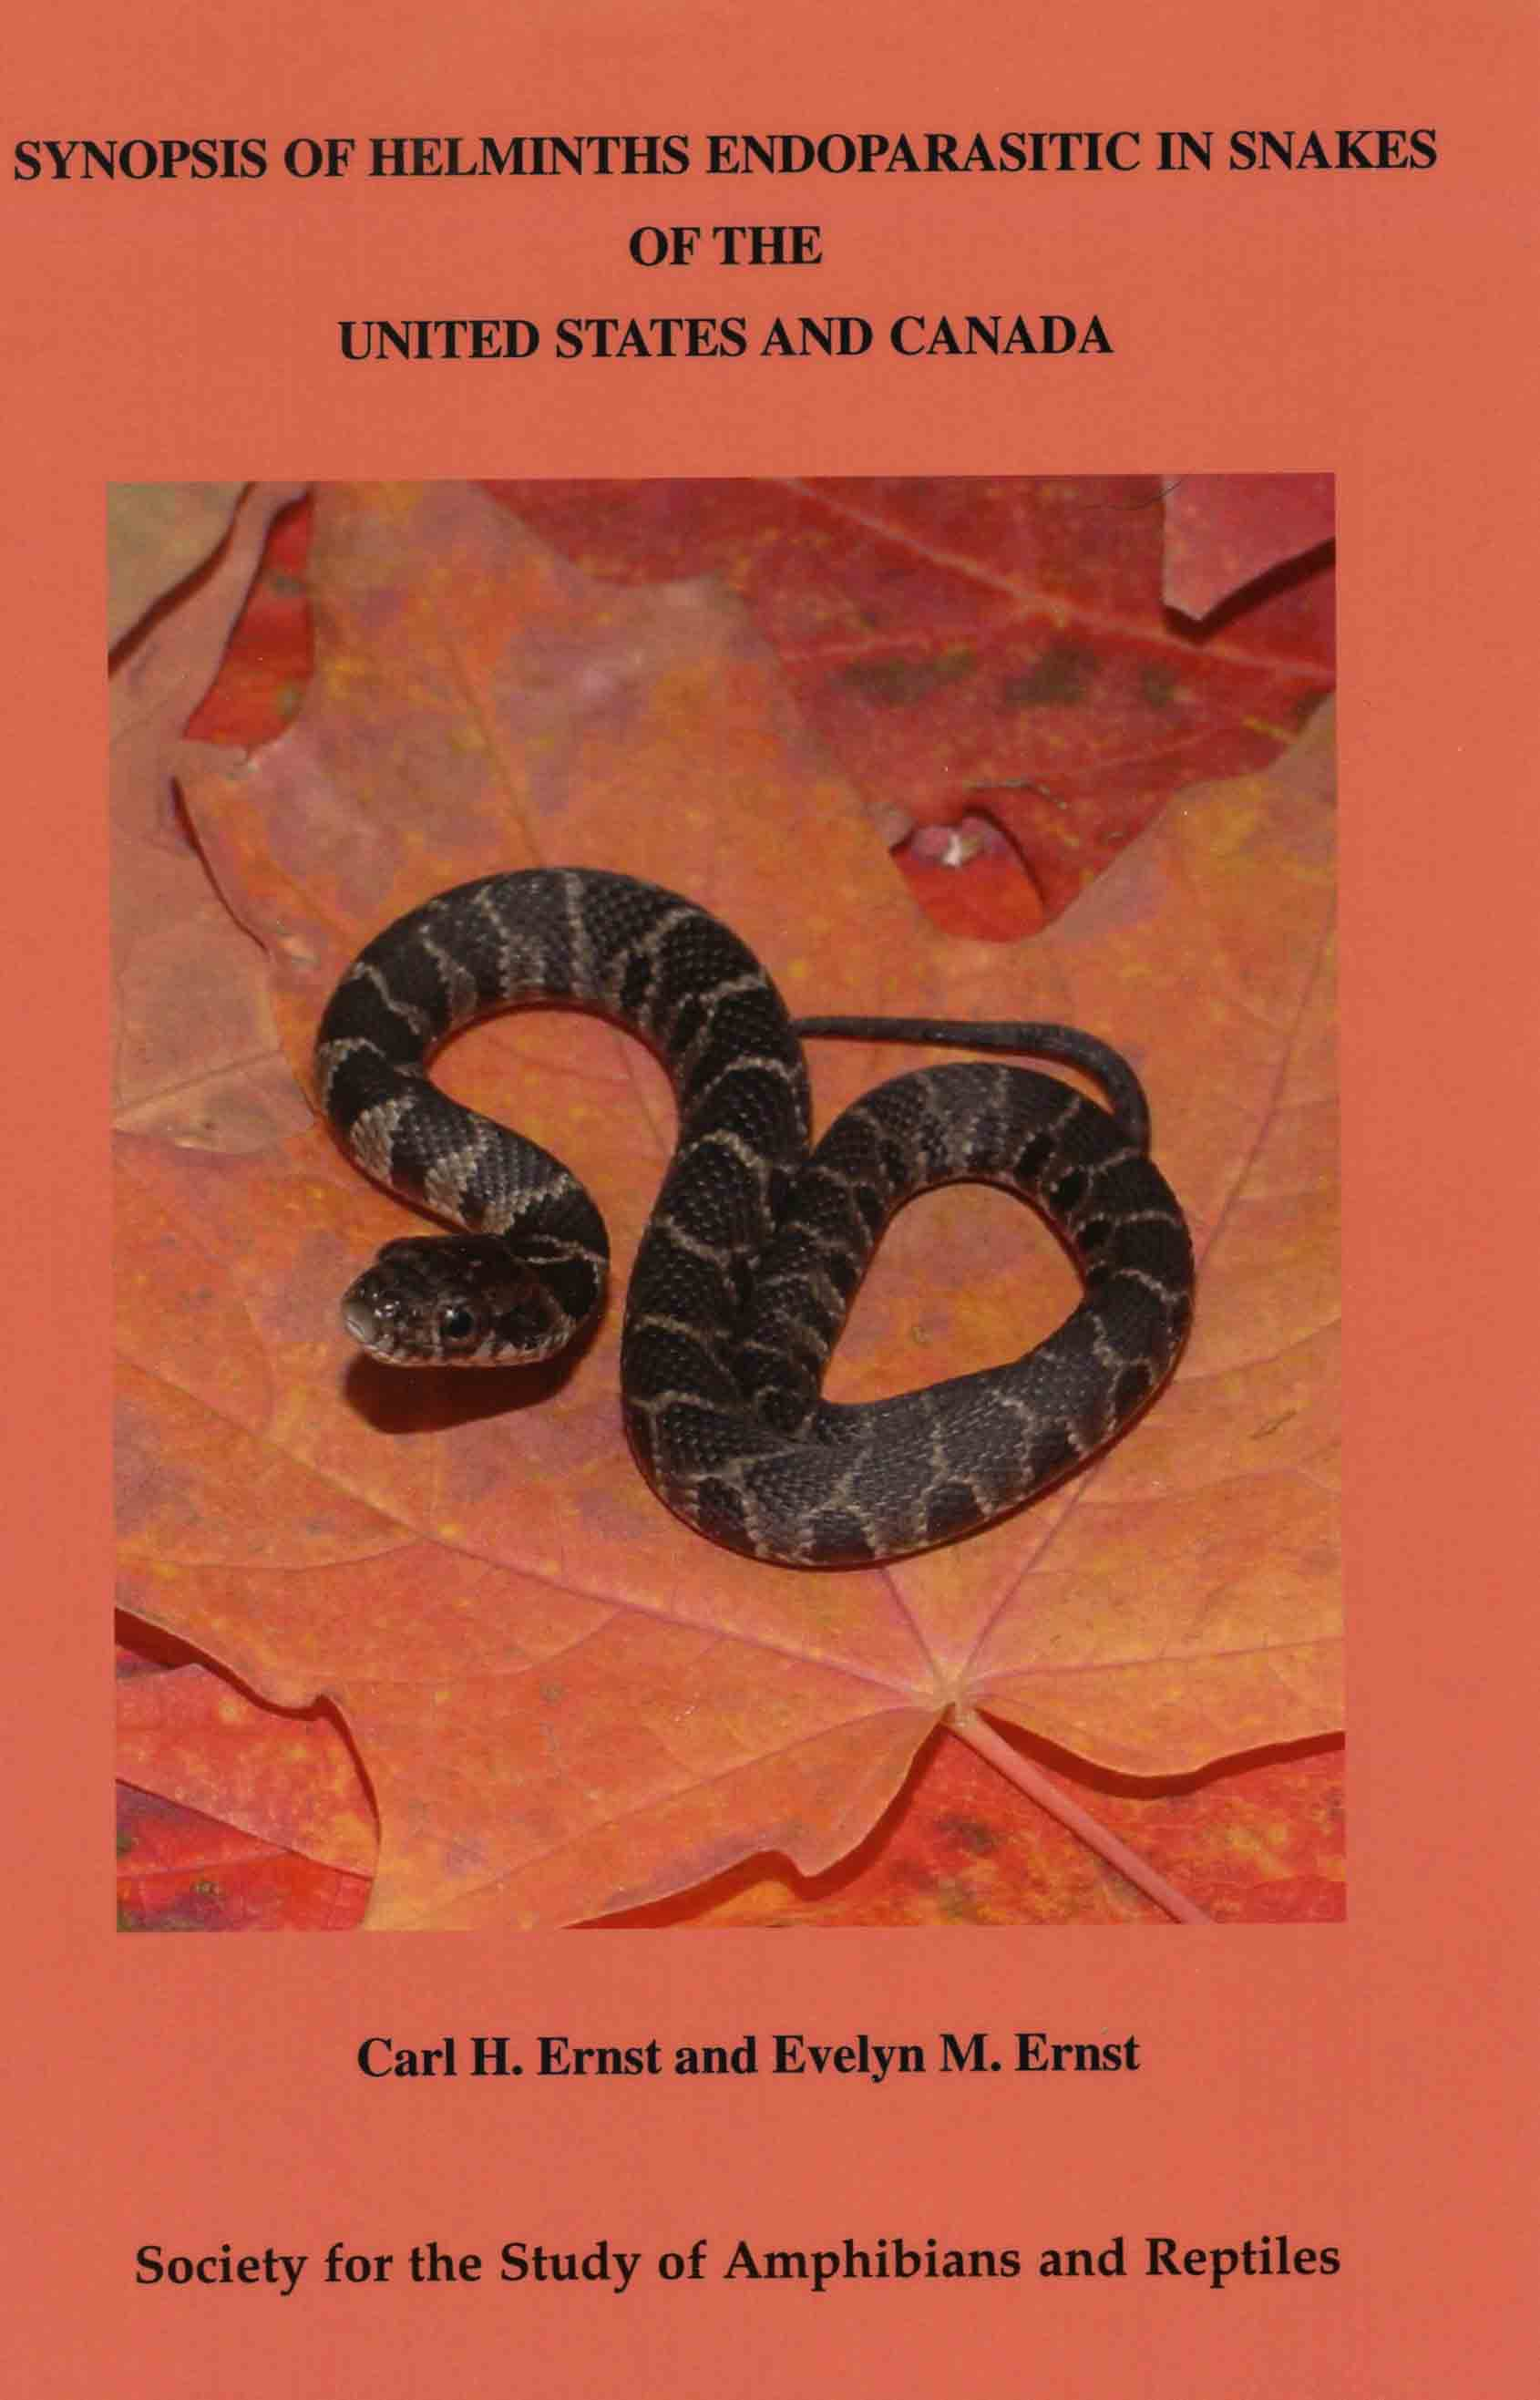 Image for Synopsis of Helminths Endoparasitic in Snakes of the United States and Canada,